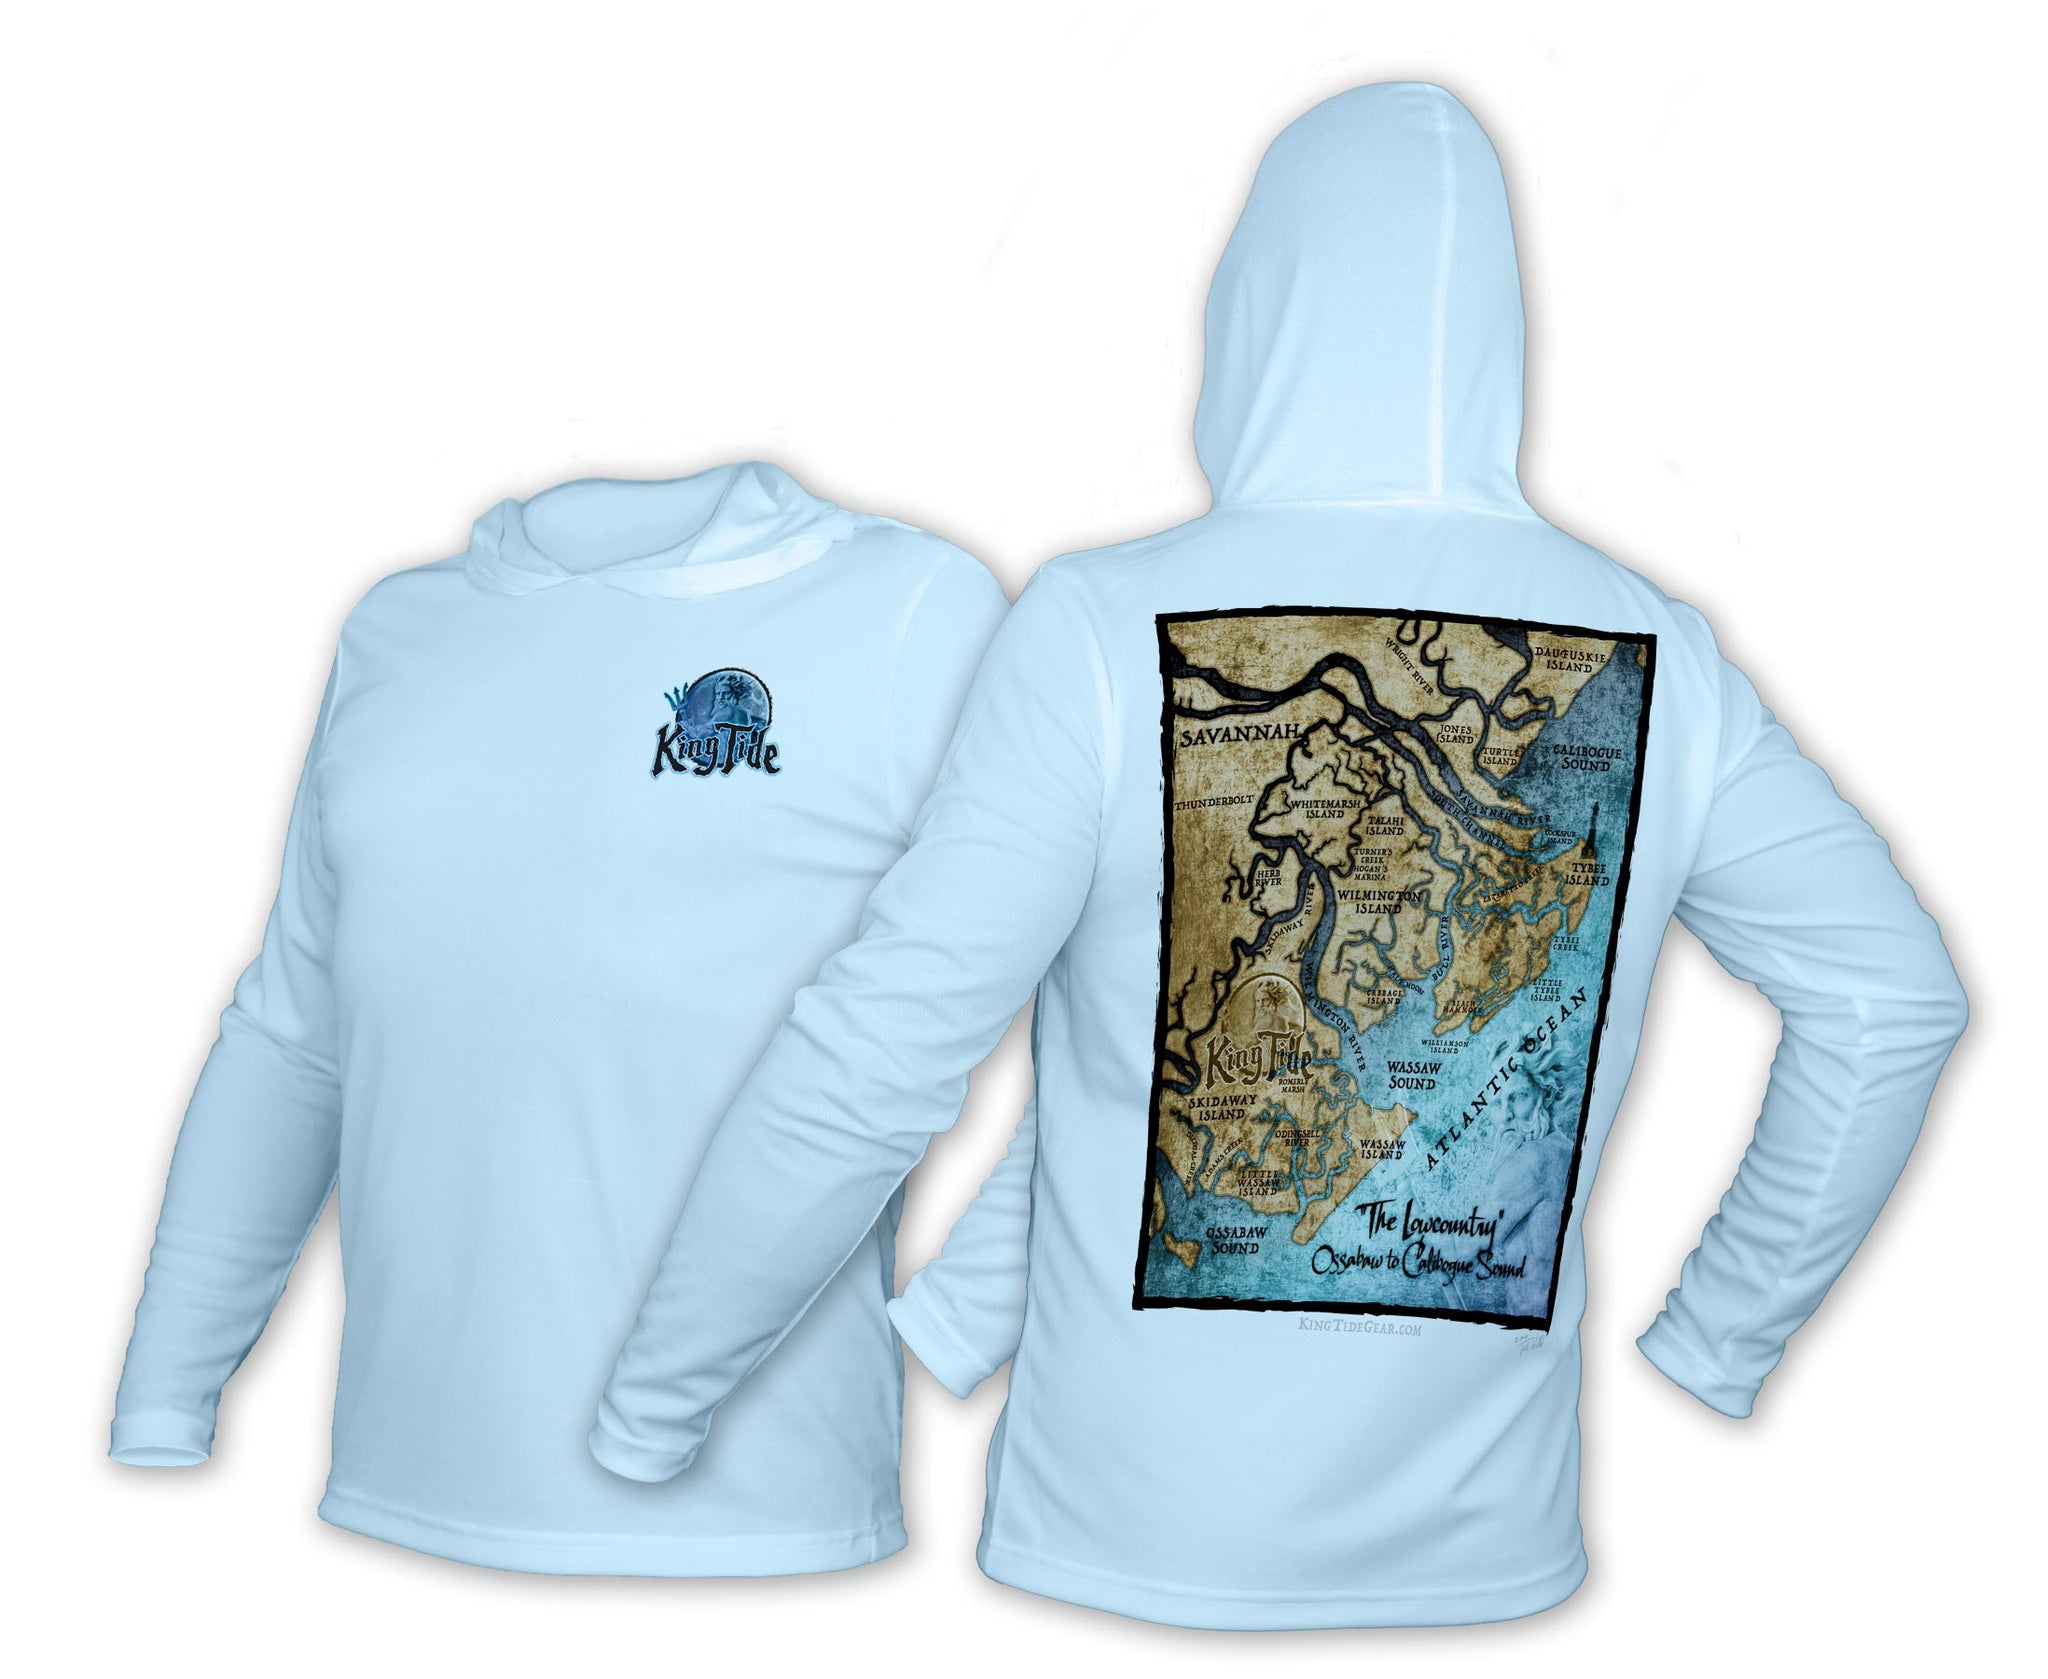 King Tide Savannah Georgia Chart Hoodie